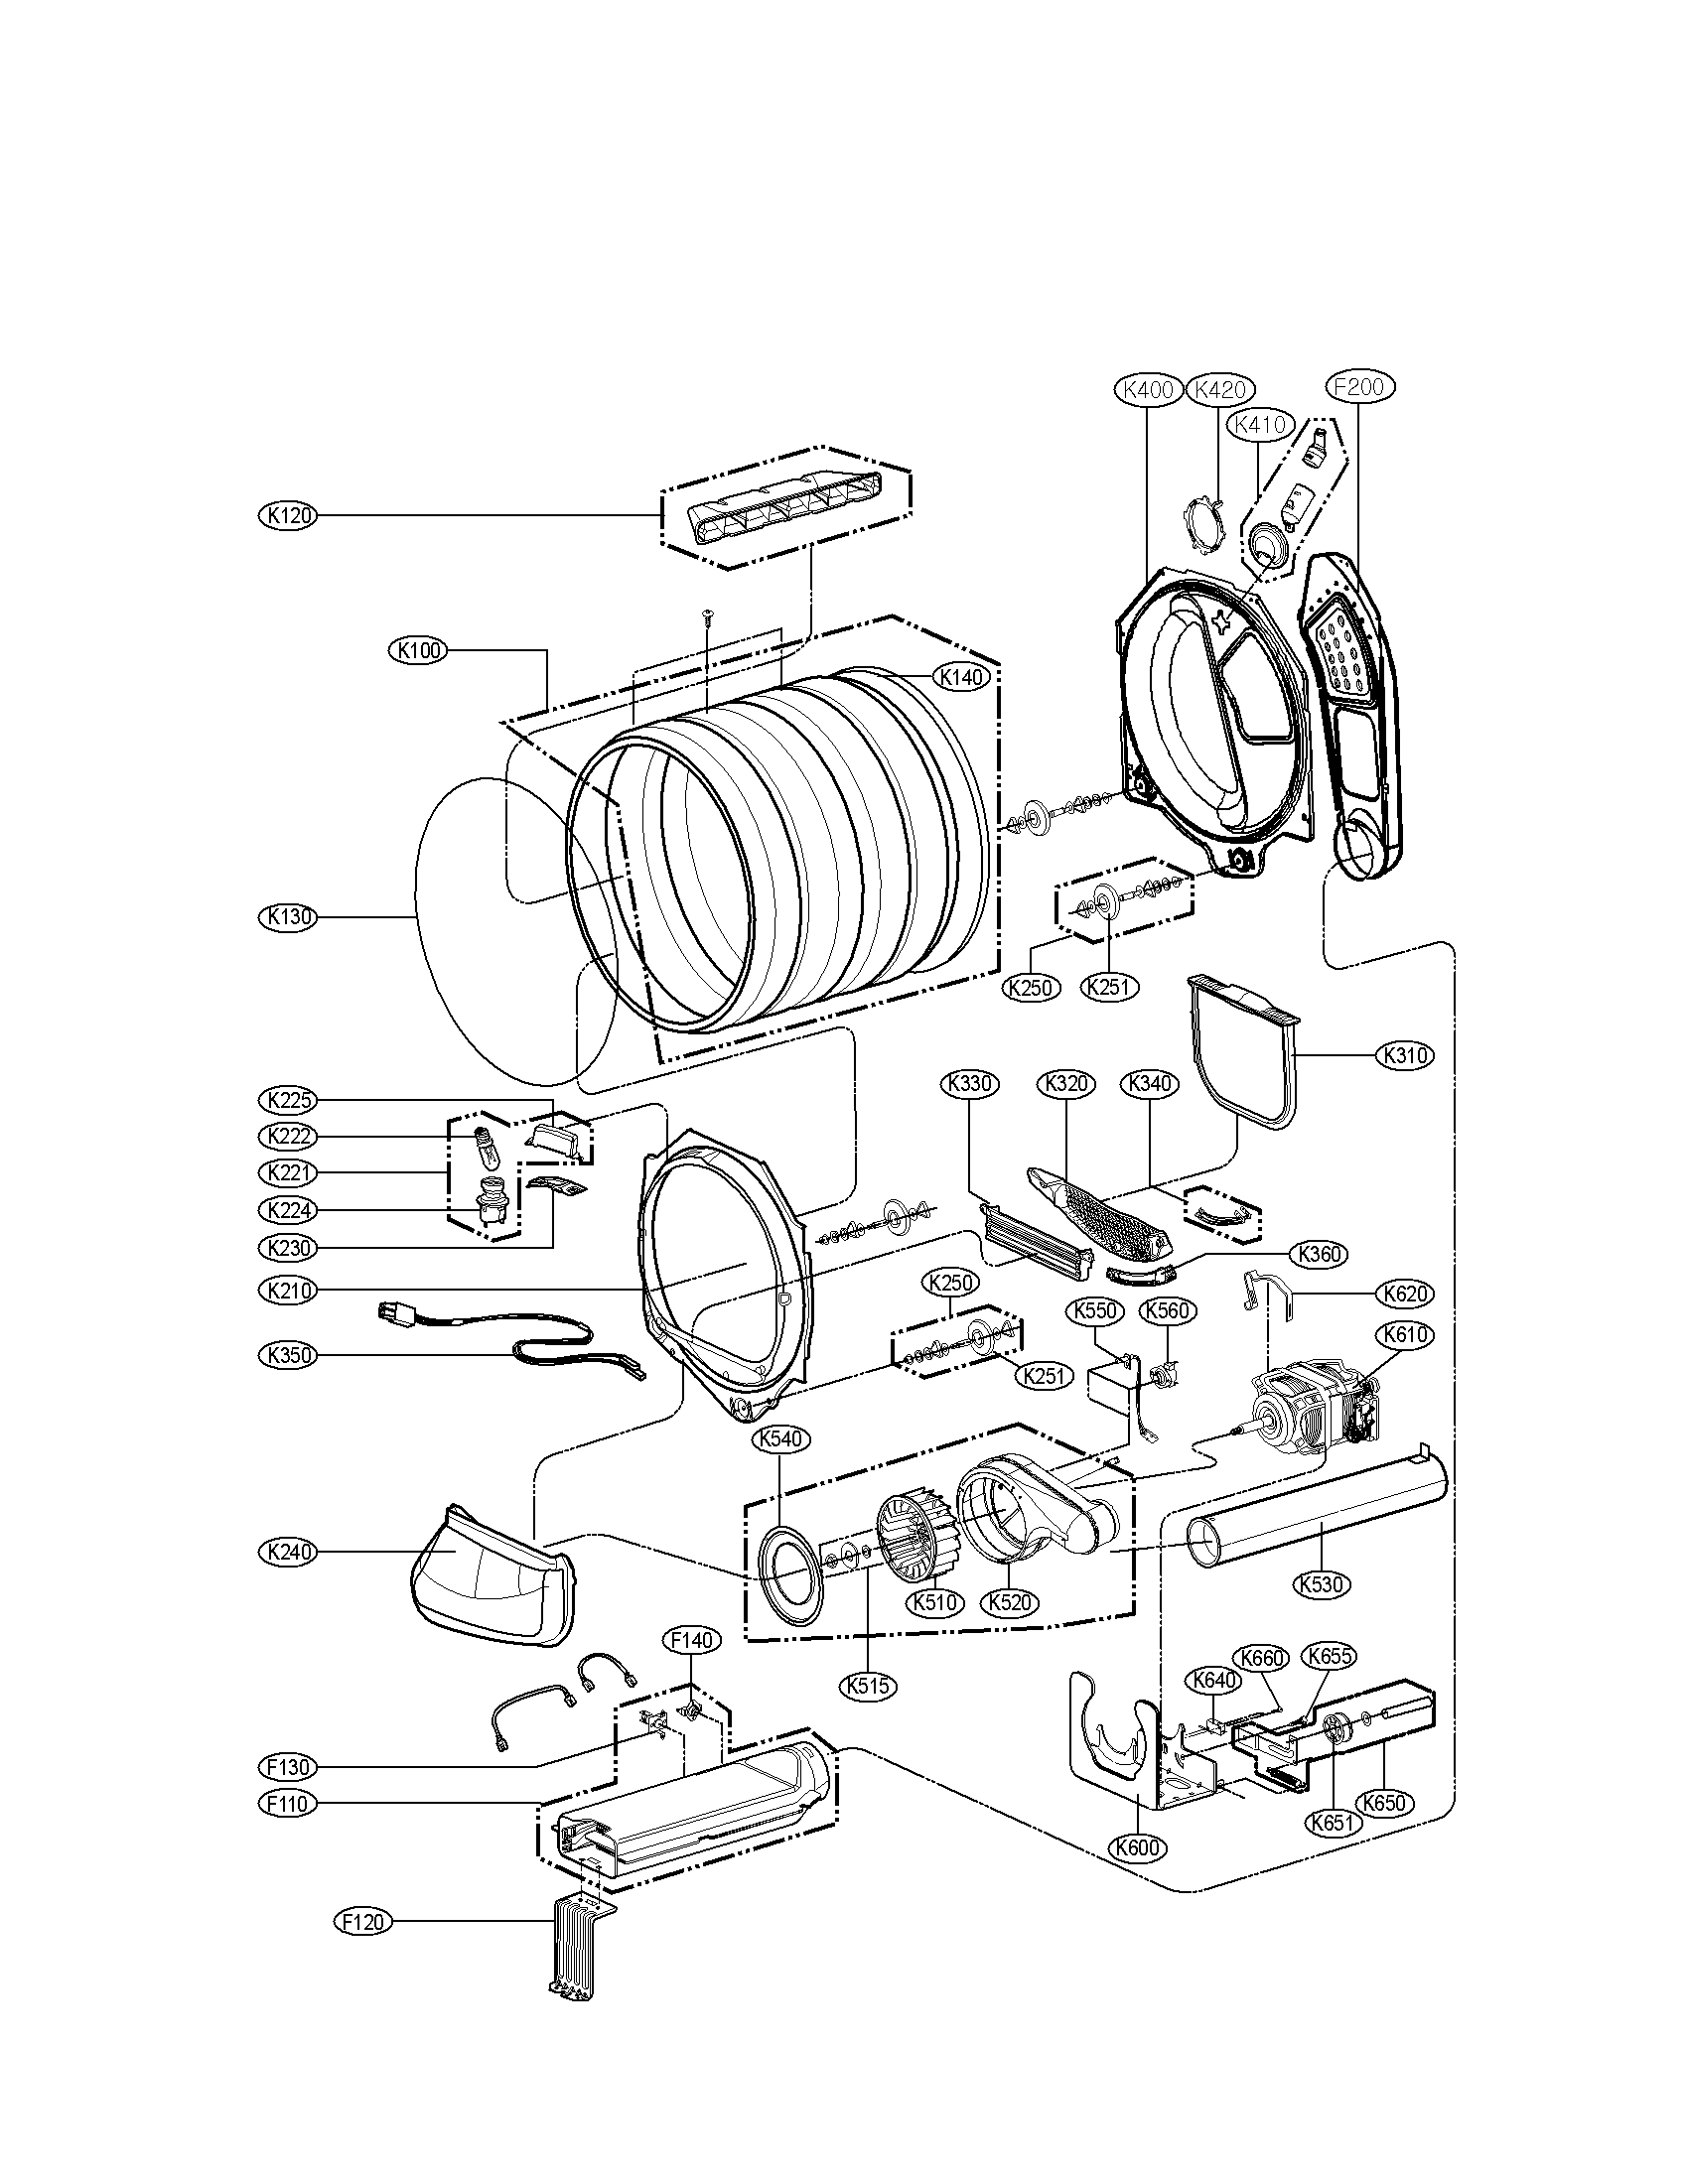 DRUM AND MOTOR ASSEMBLY PARTS Diagram & Parts List for